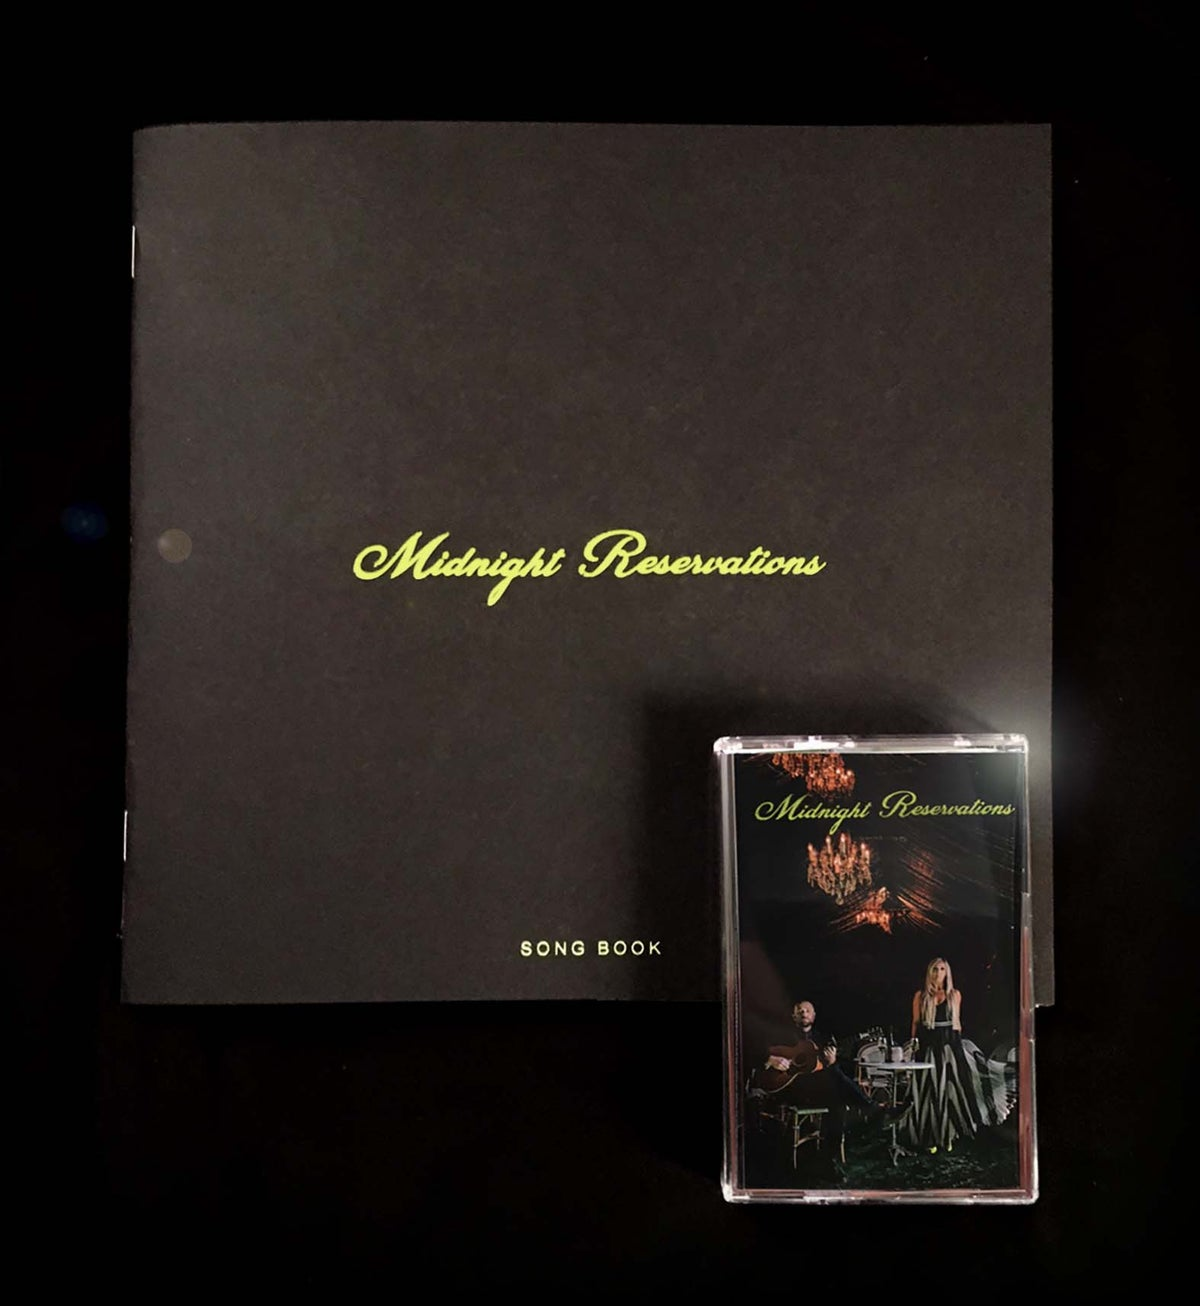 "Image of 8"", 24-Page, Limited Edition photo/song book & Casette"